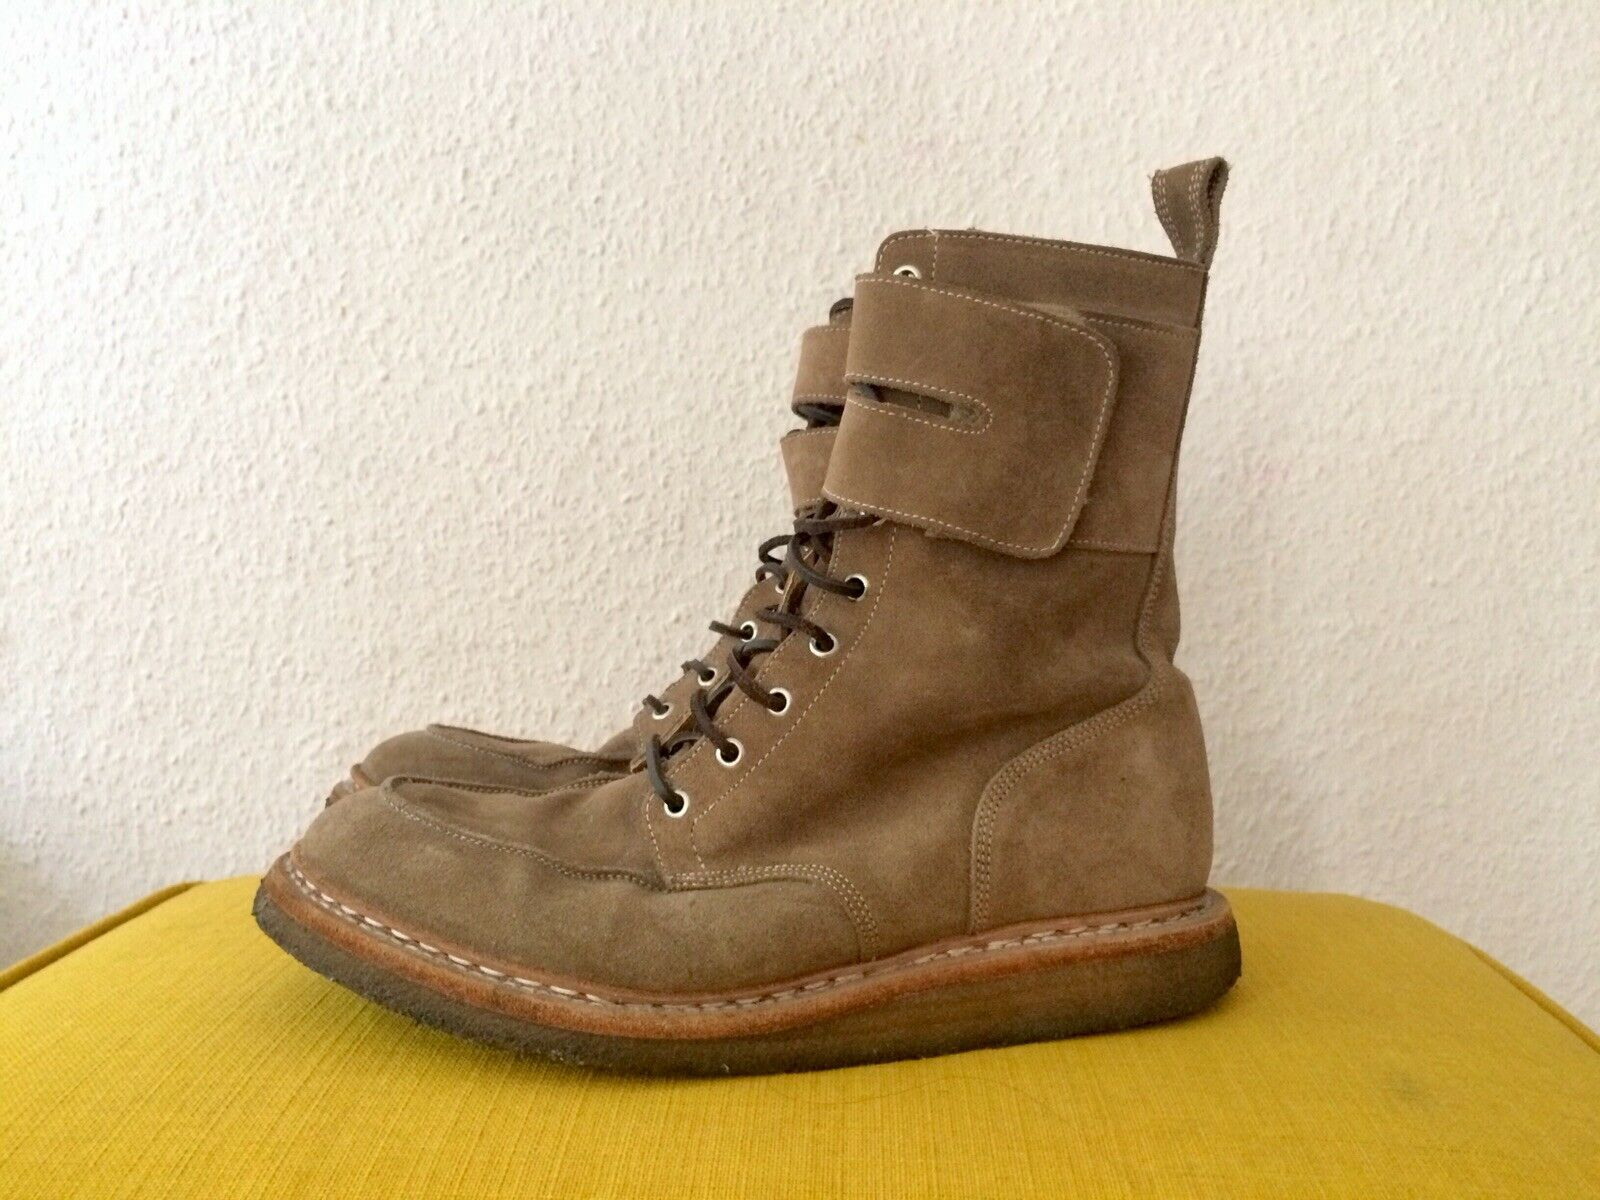 Balmain Luxus Leder-Stiefel Stiefel, Made in France, Gr. 45